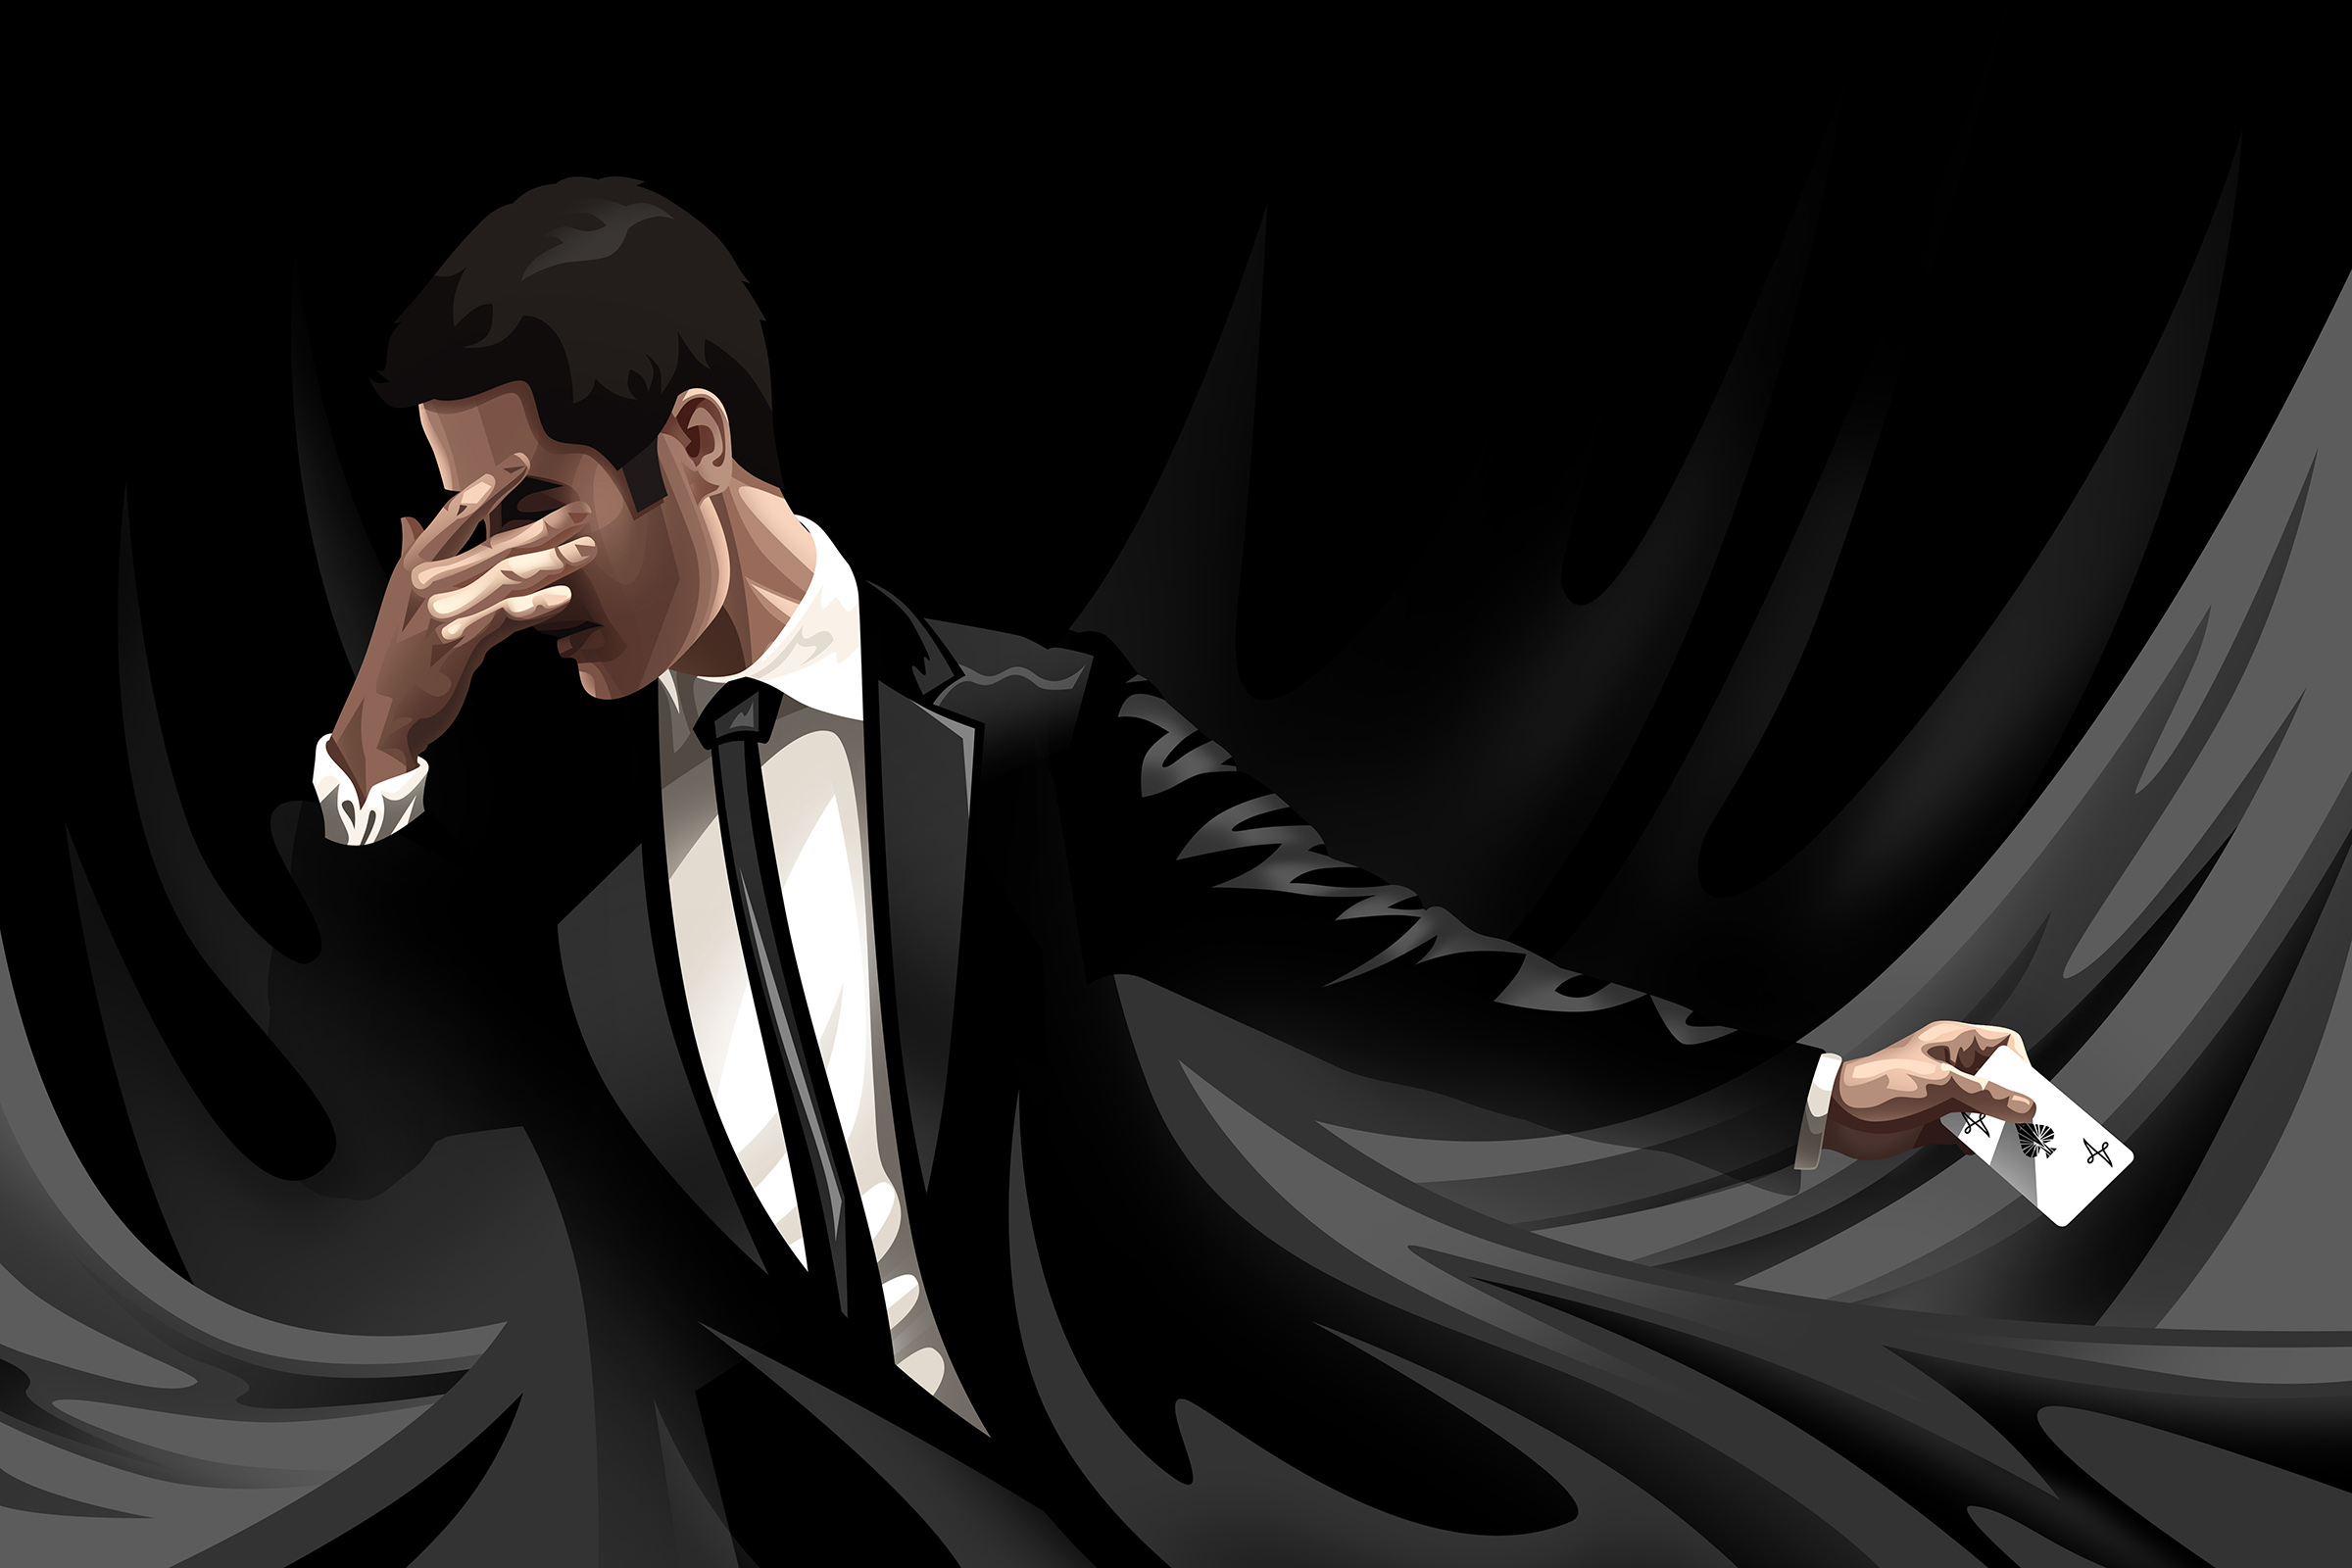 A vectored portrait of the magician David Kwong. He holds his hand over his eyes as he summons a playing card.